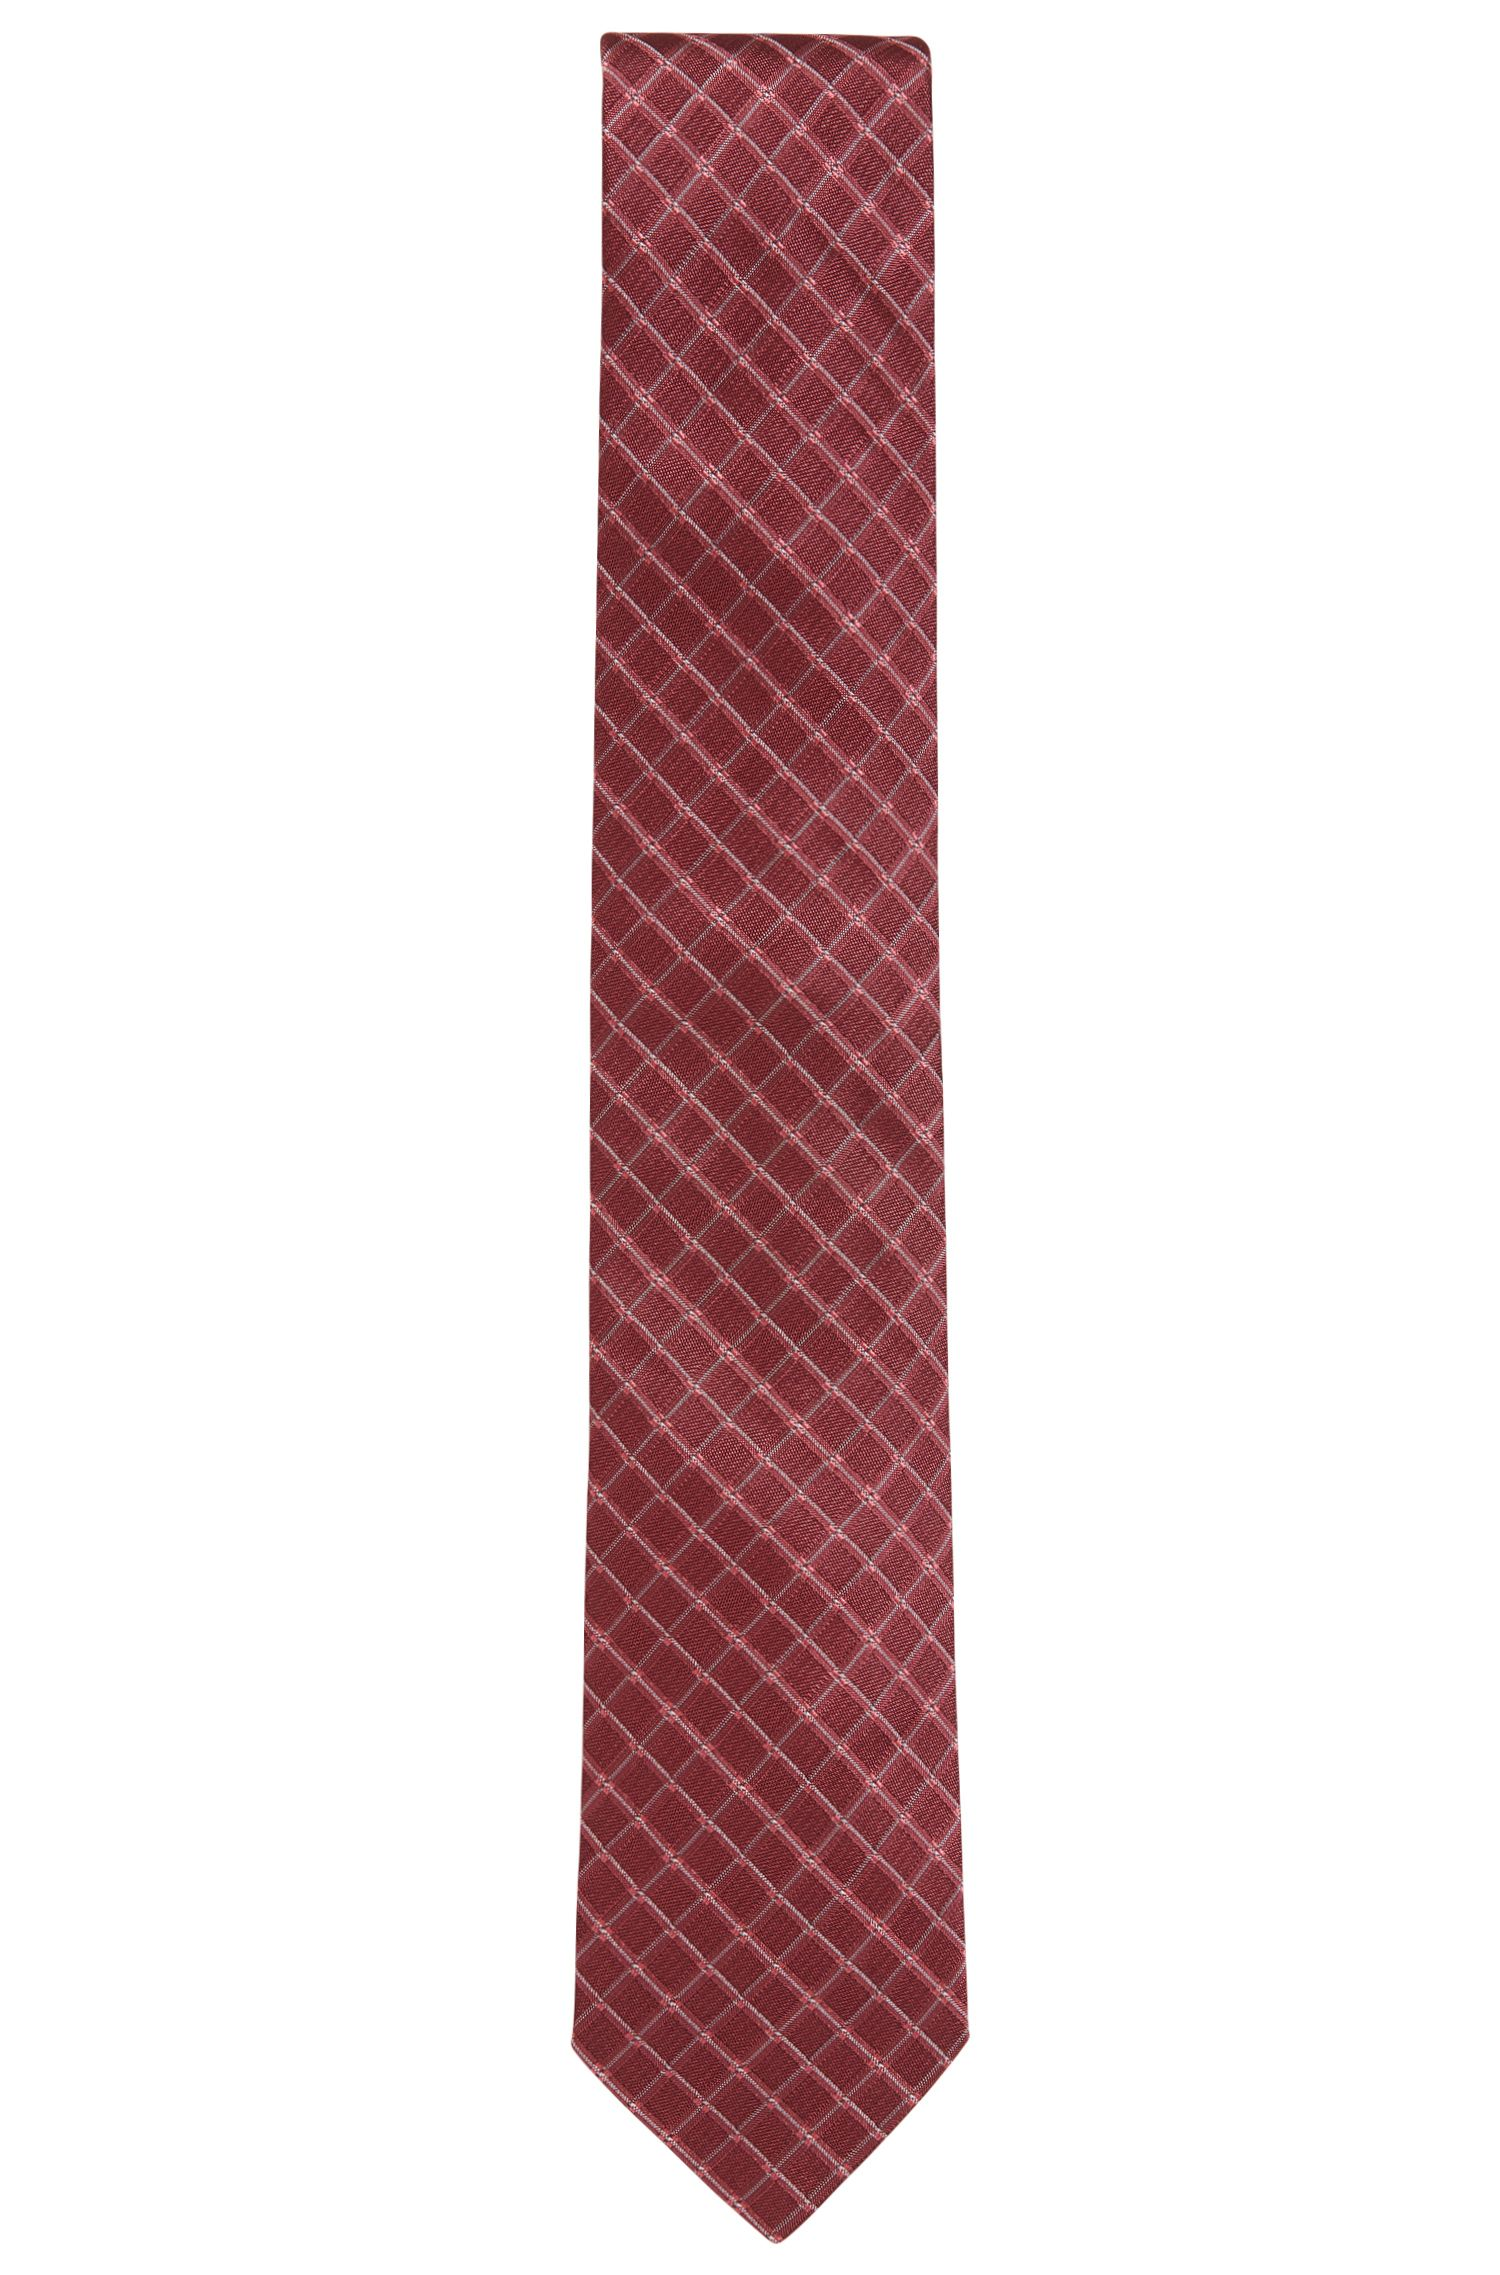 Checked Italian Silk Tie